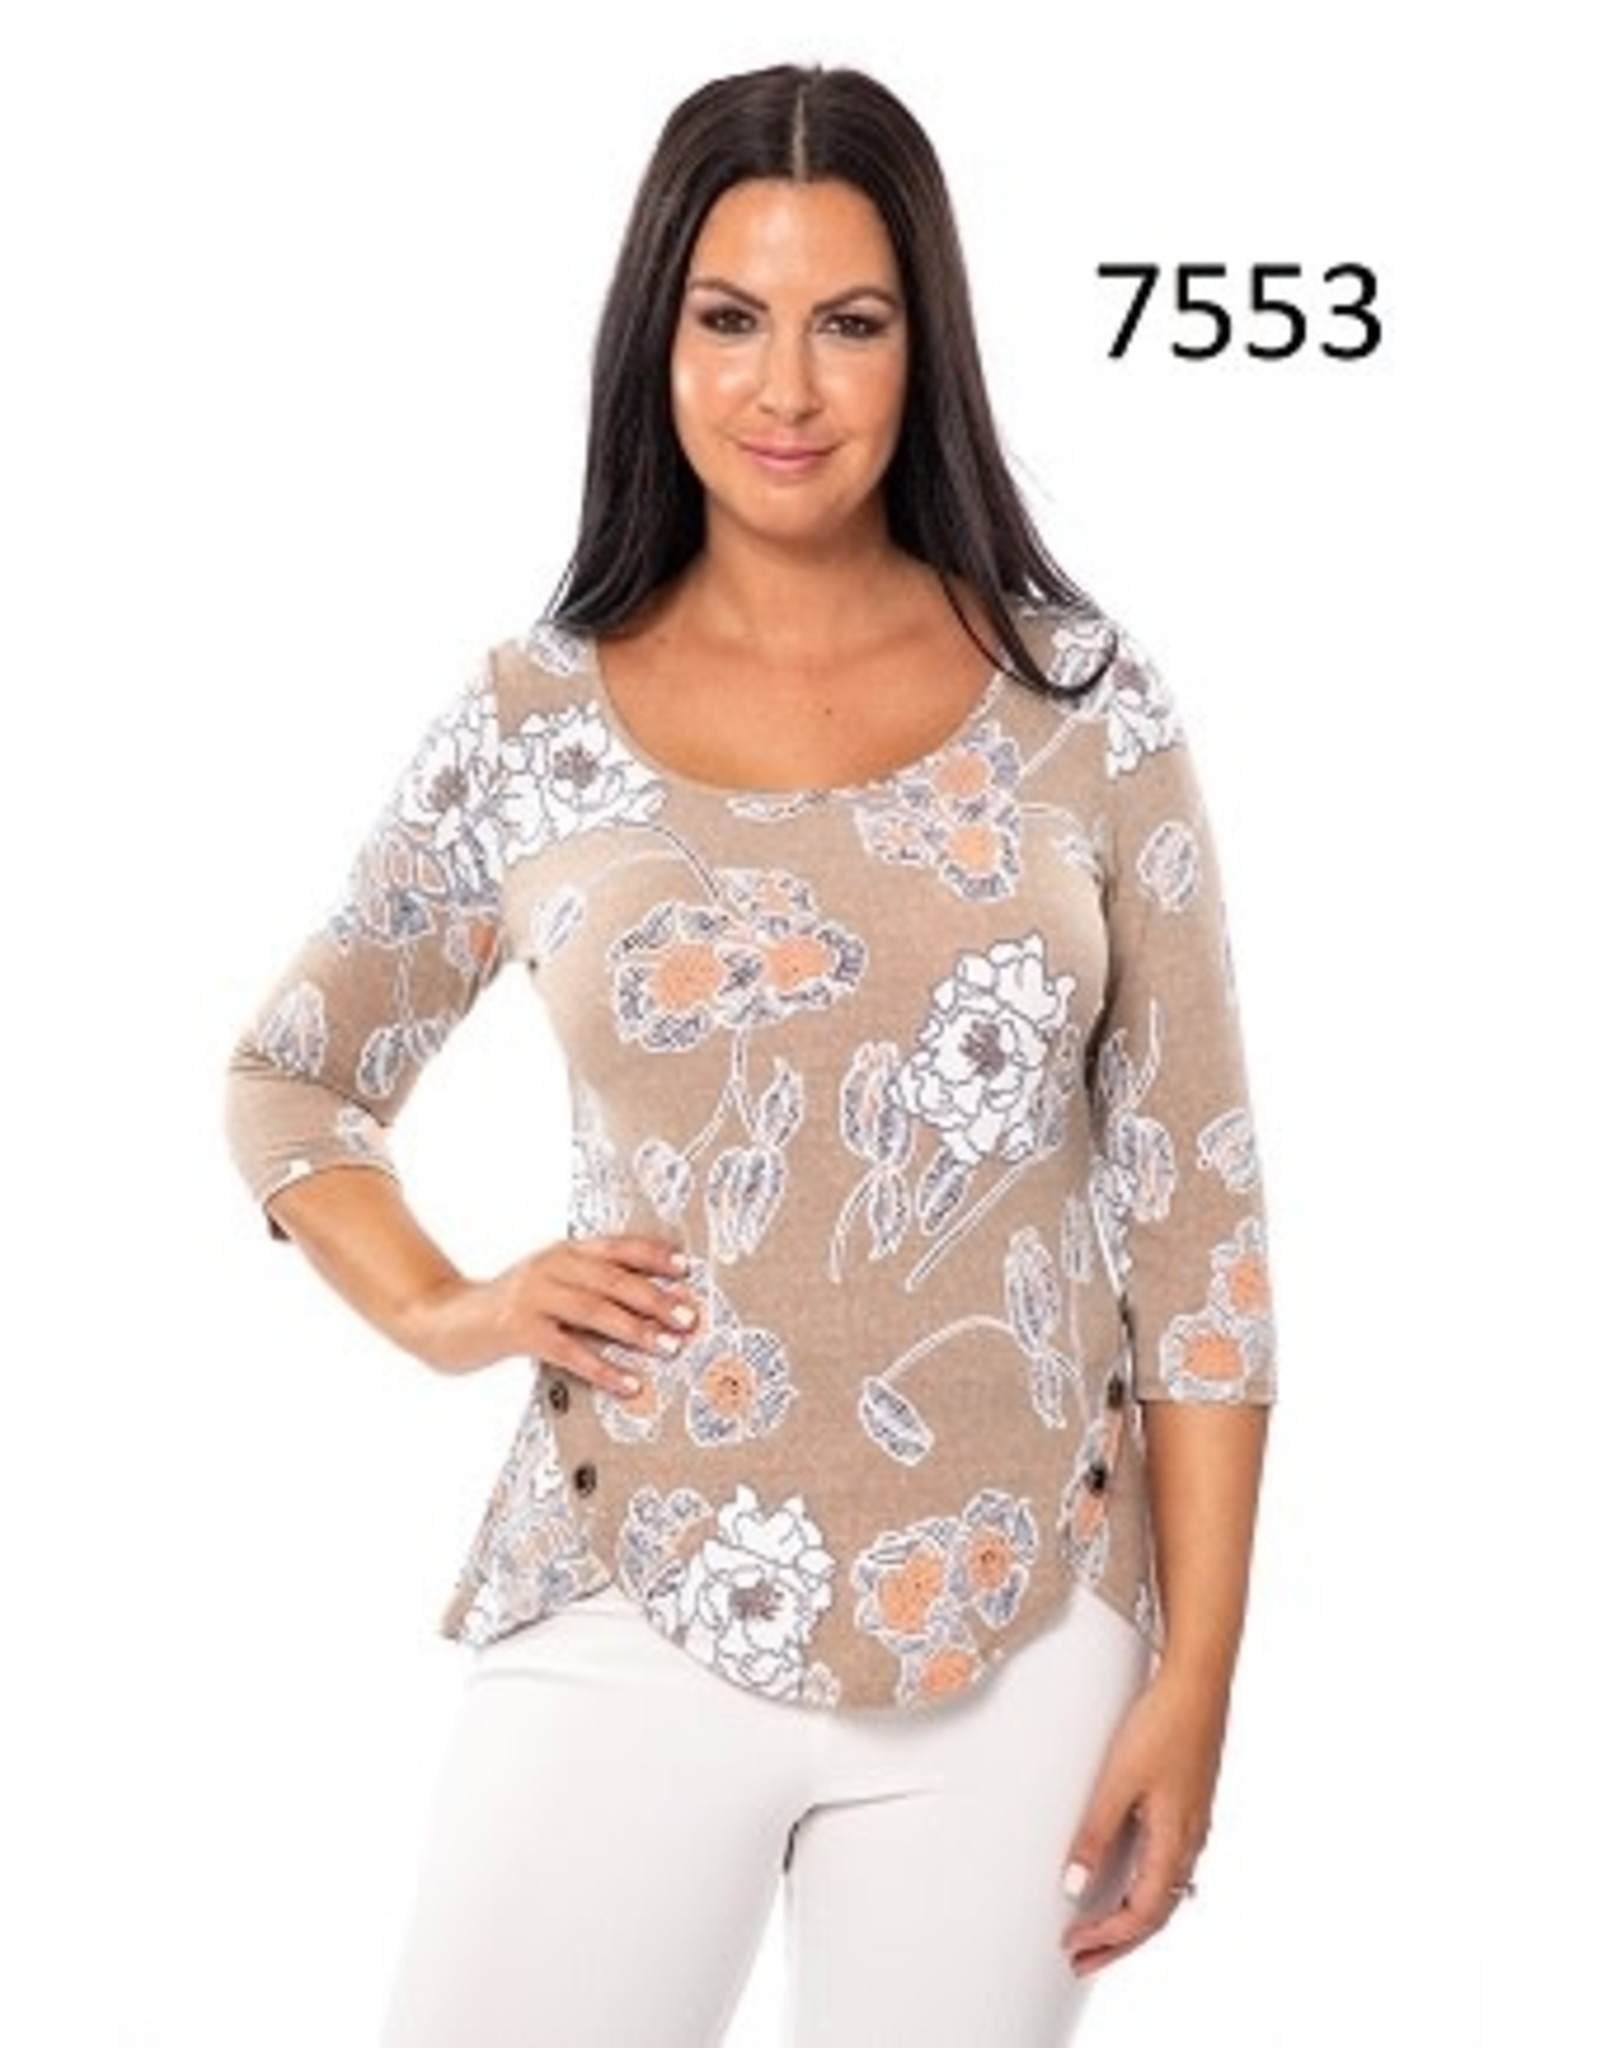 Bali Taupe & Apricot Top